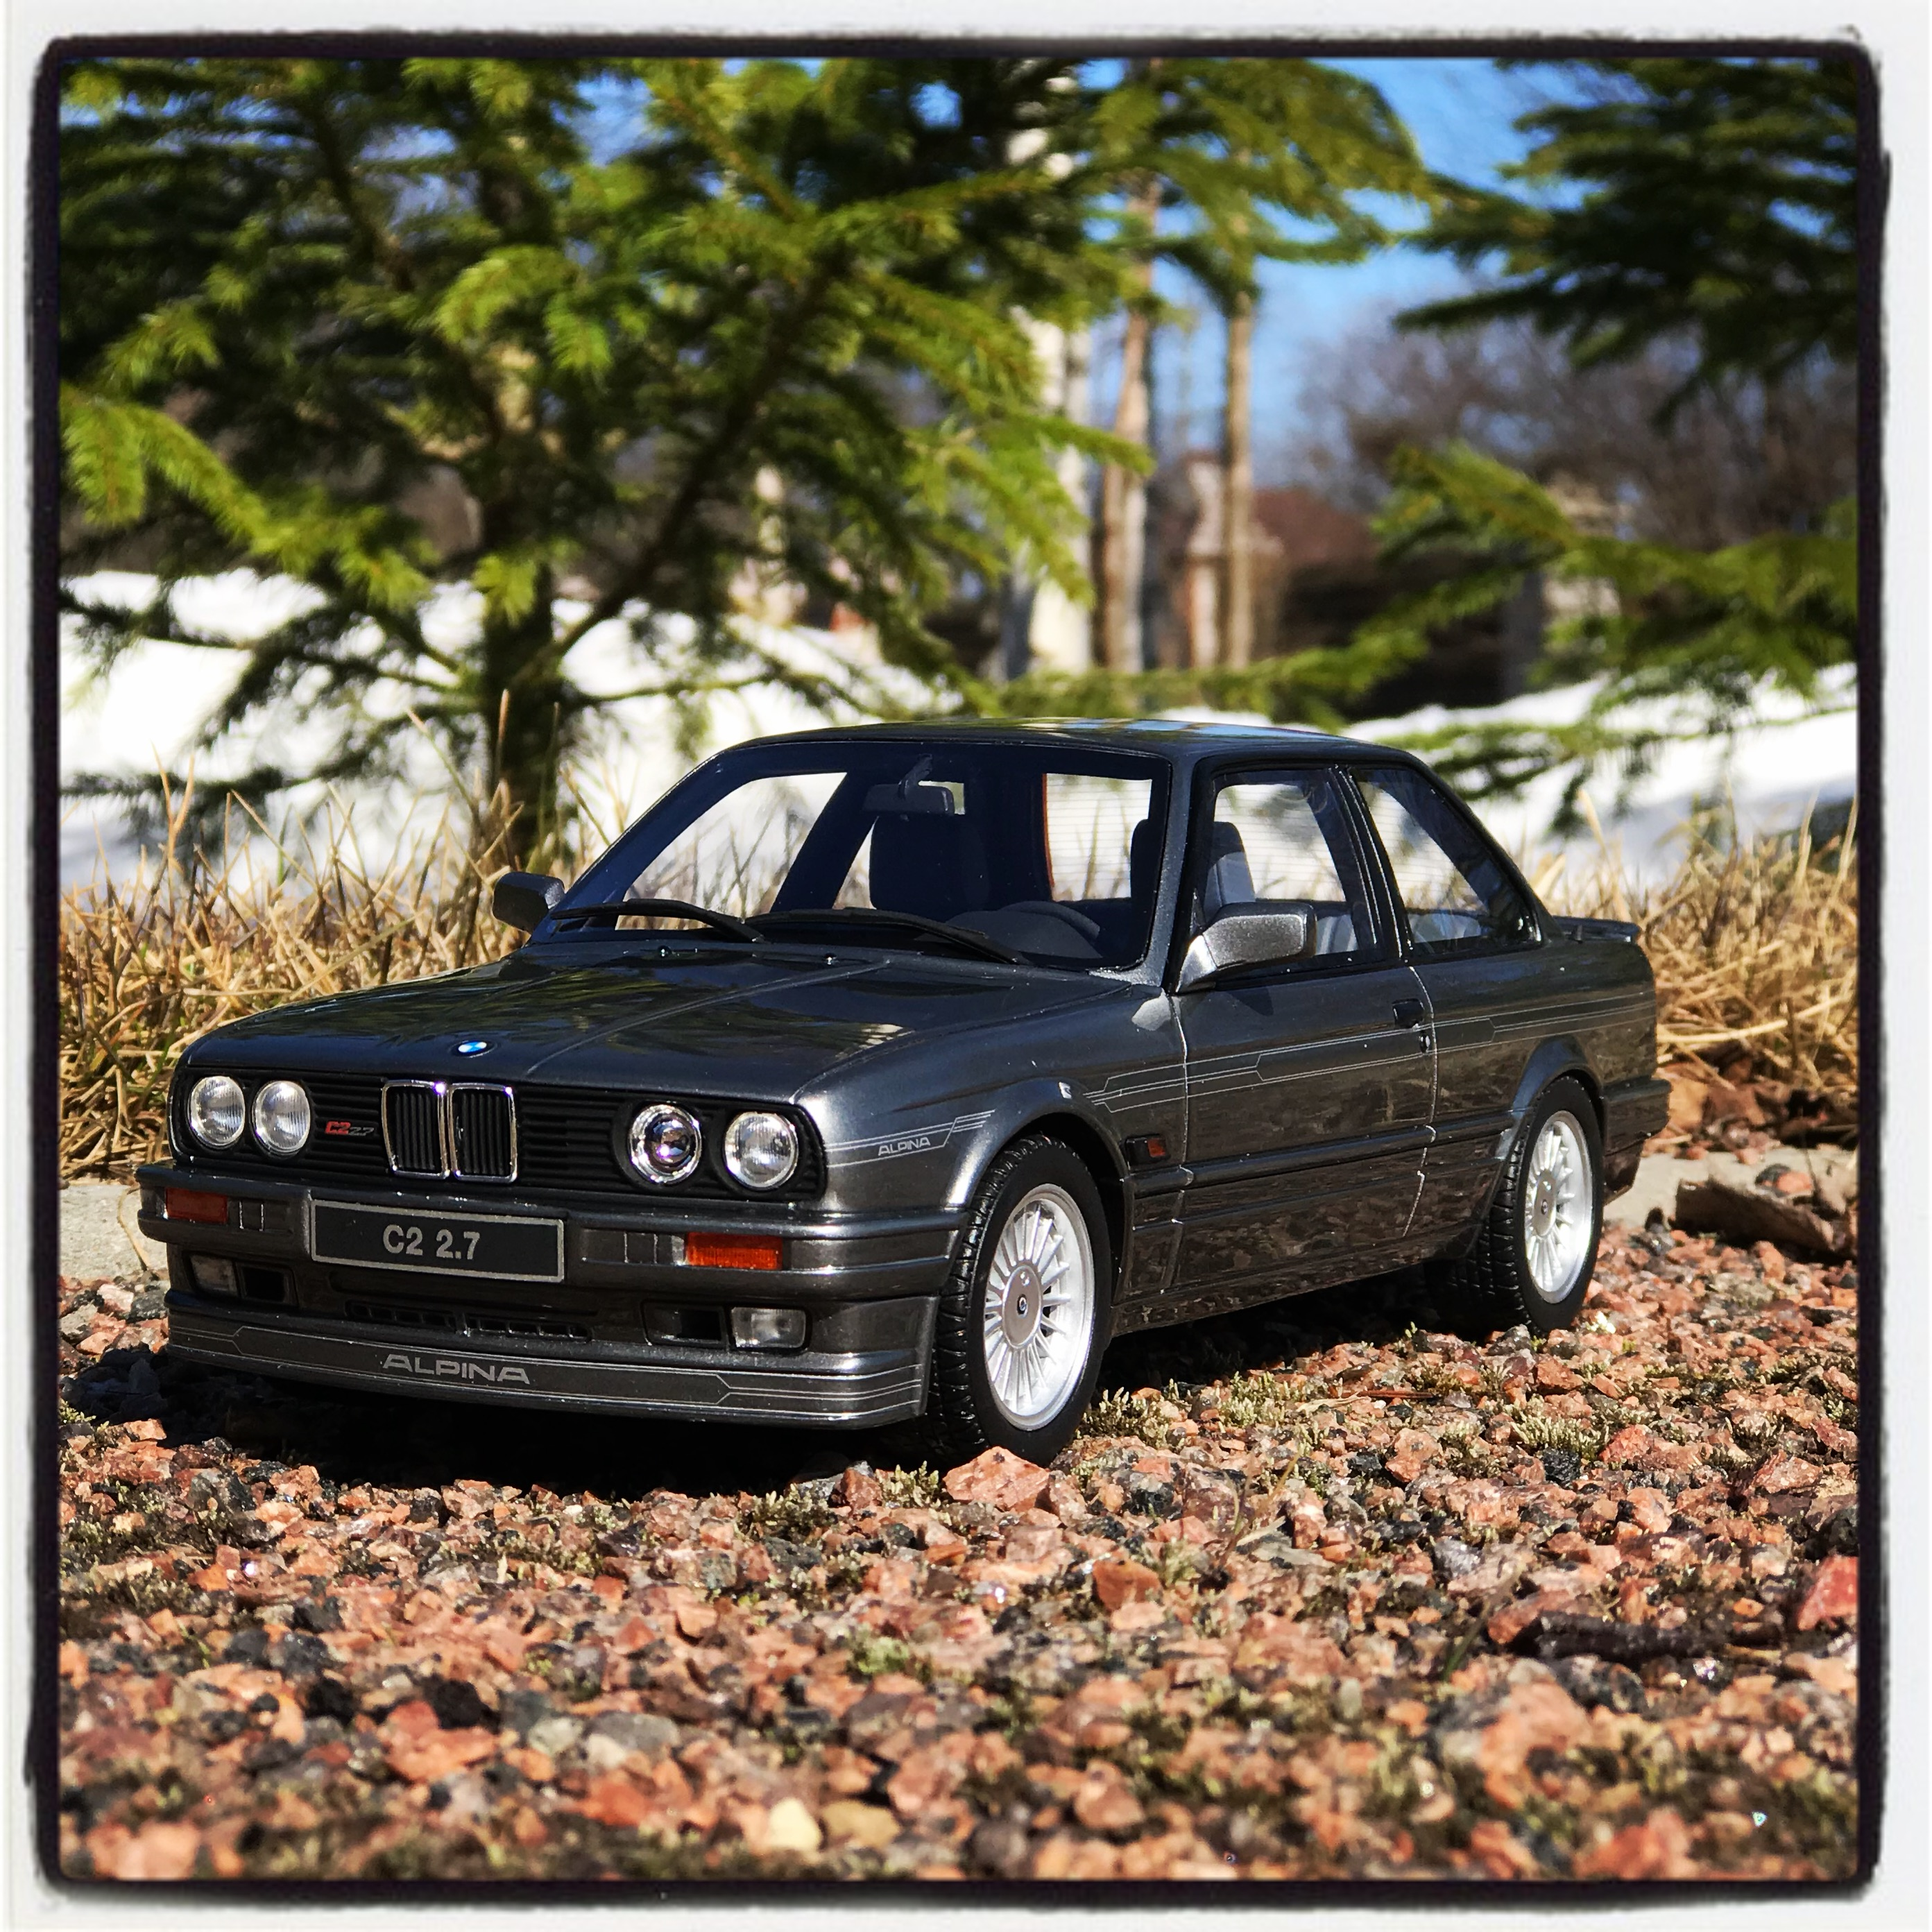 Alpina C2 2.7 (E30) le 1,099 of 2,000pcs. (otto)